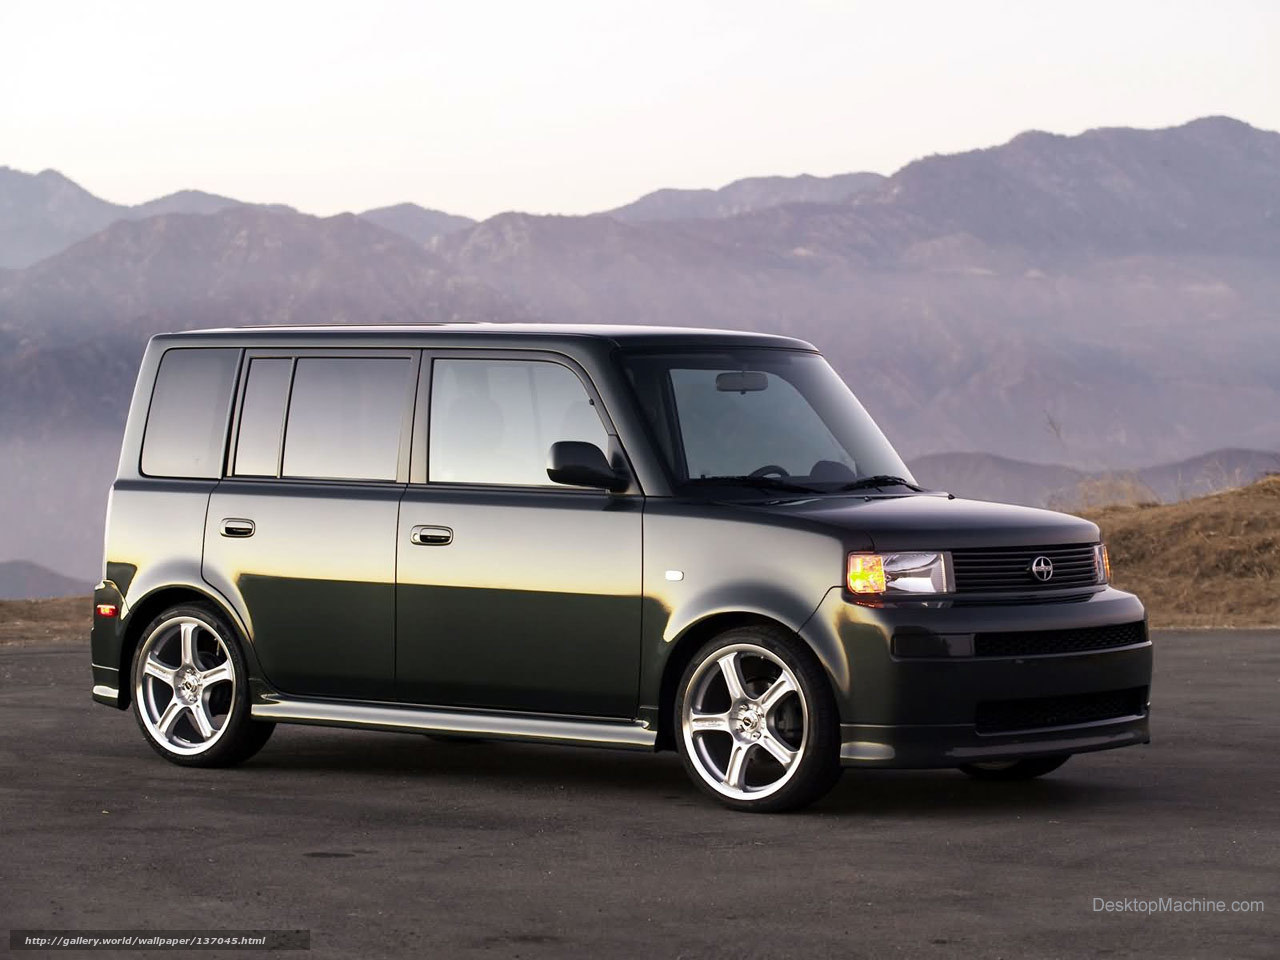 Download Wallpaper Scion, XB, Car, Machinery Free Desktop Wallpaper In The  Resolution 1280x960